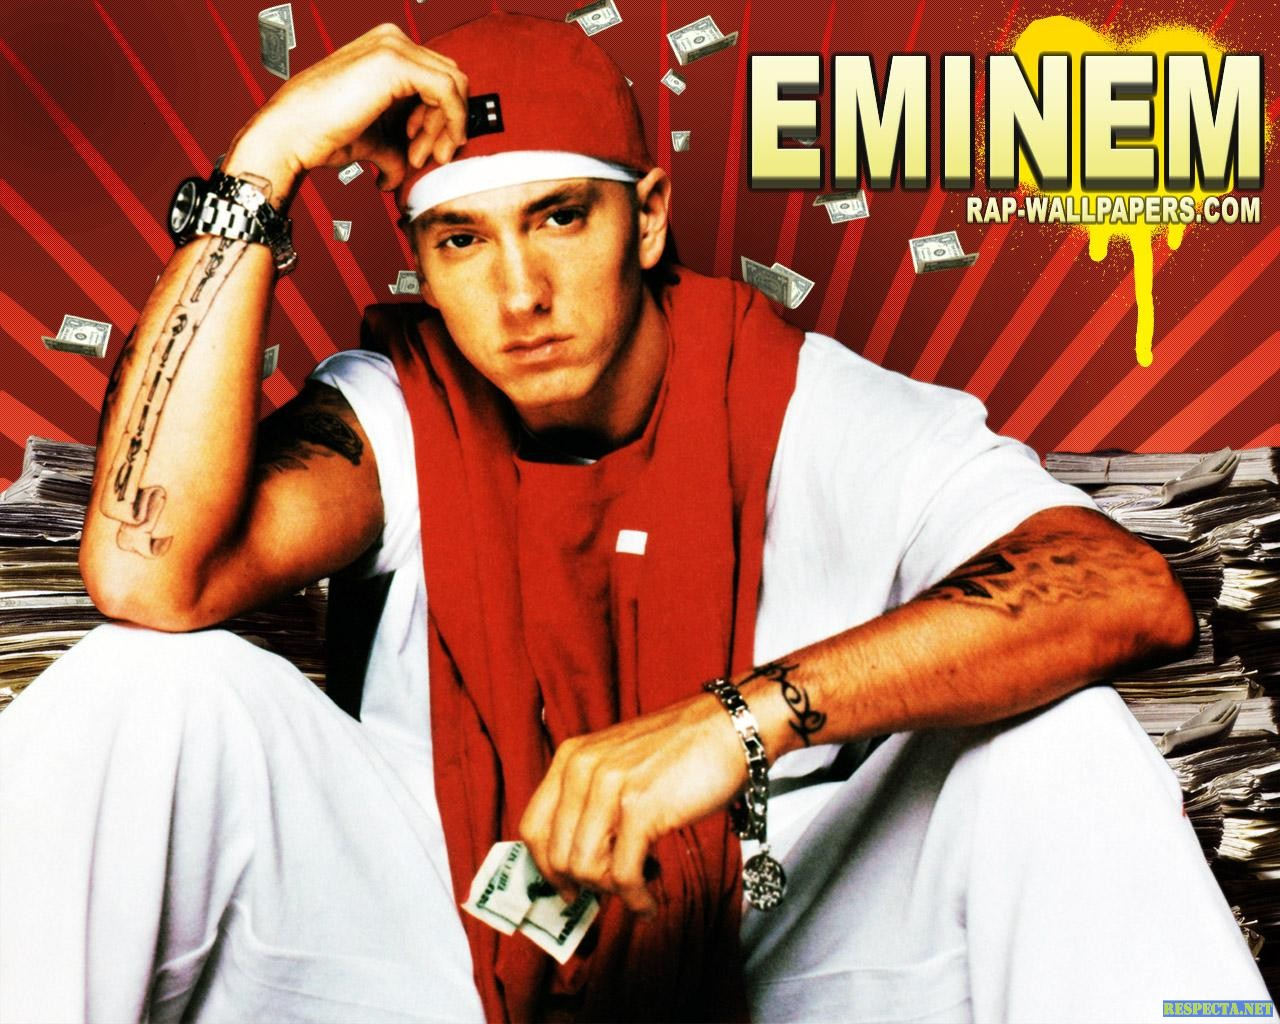 EMINEM-tatos-fan-club-27861869-1280-1024